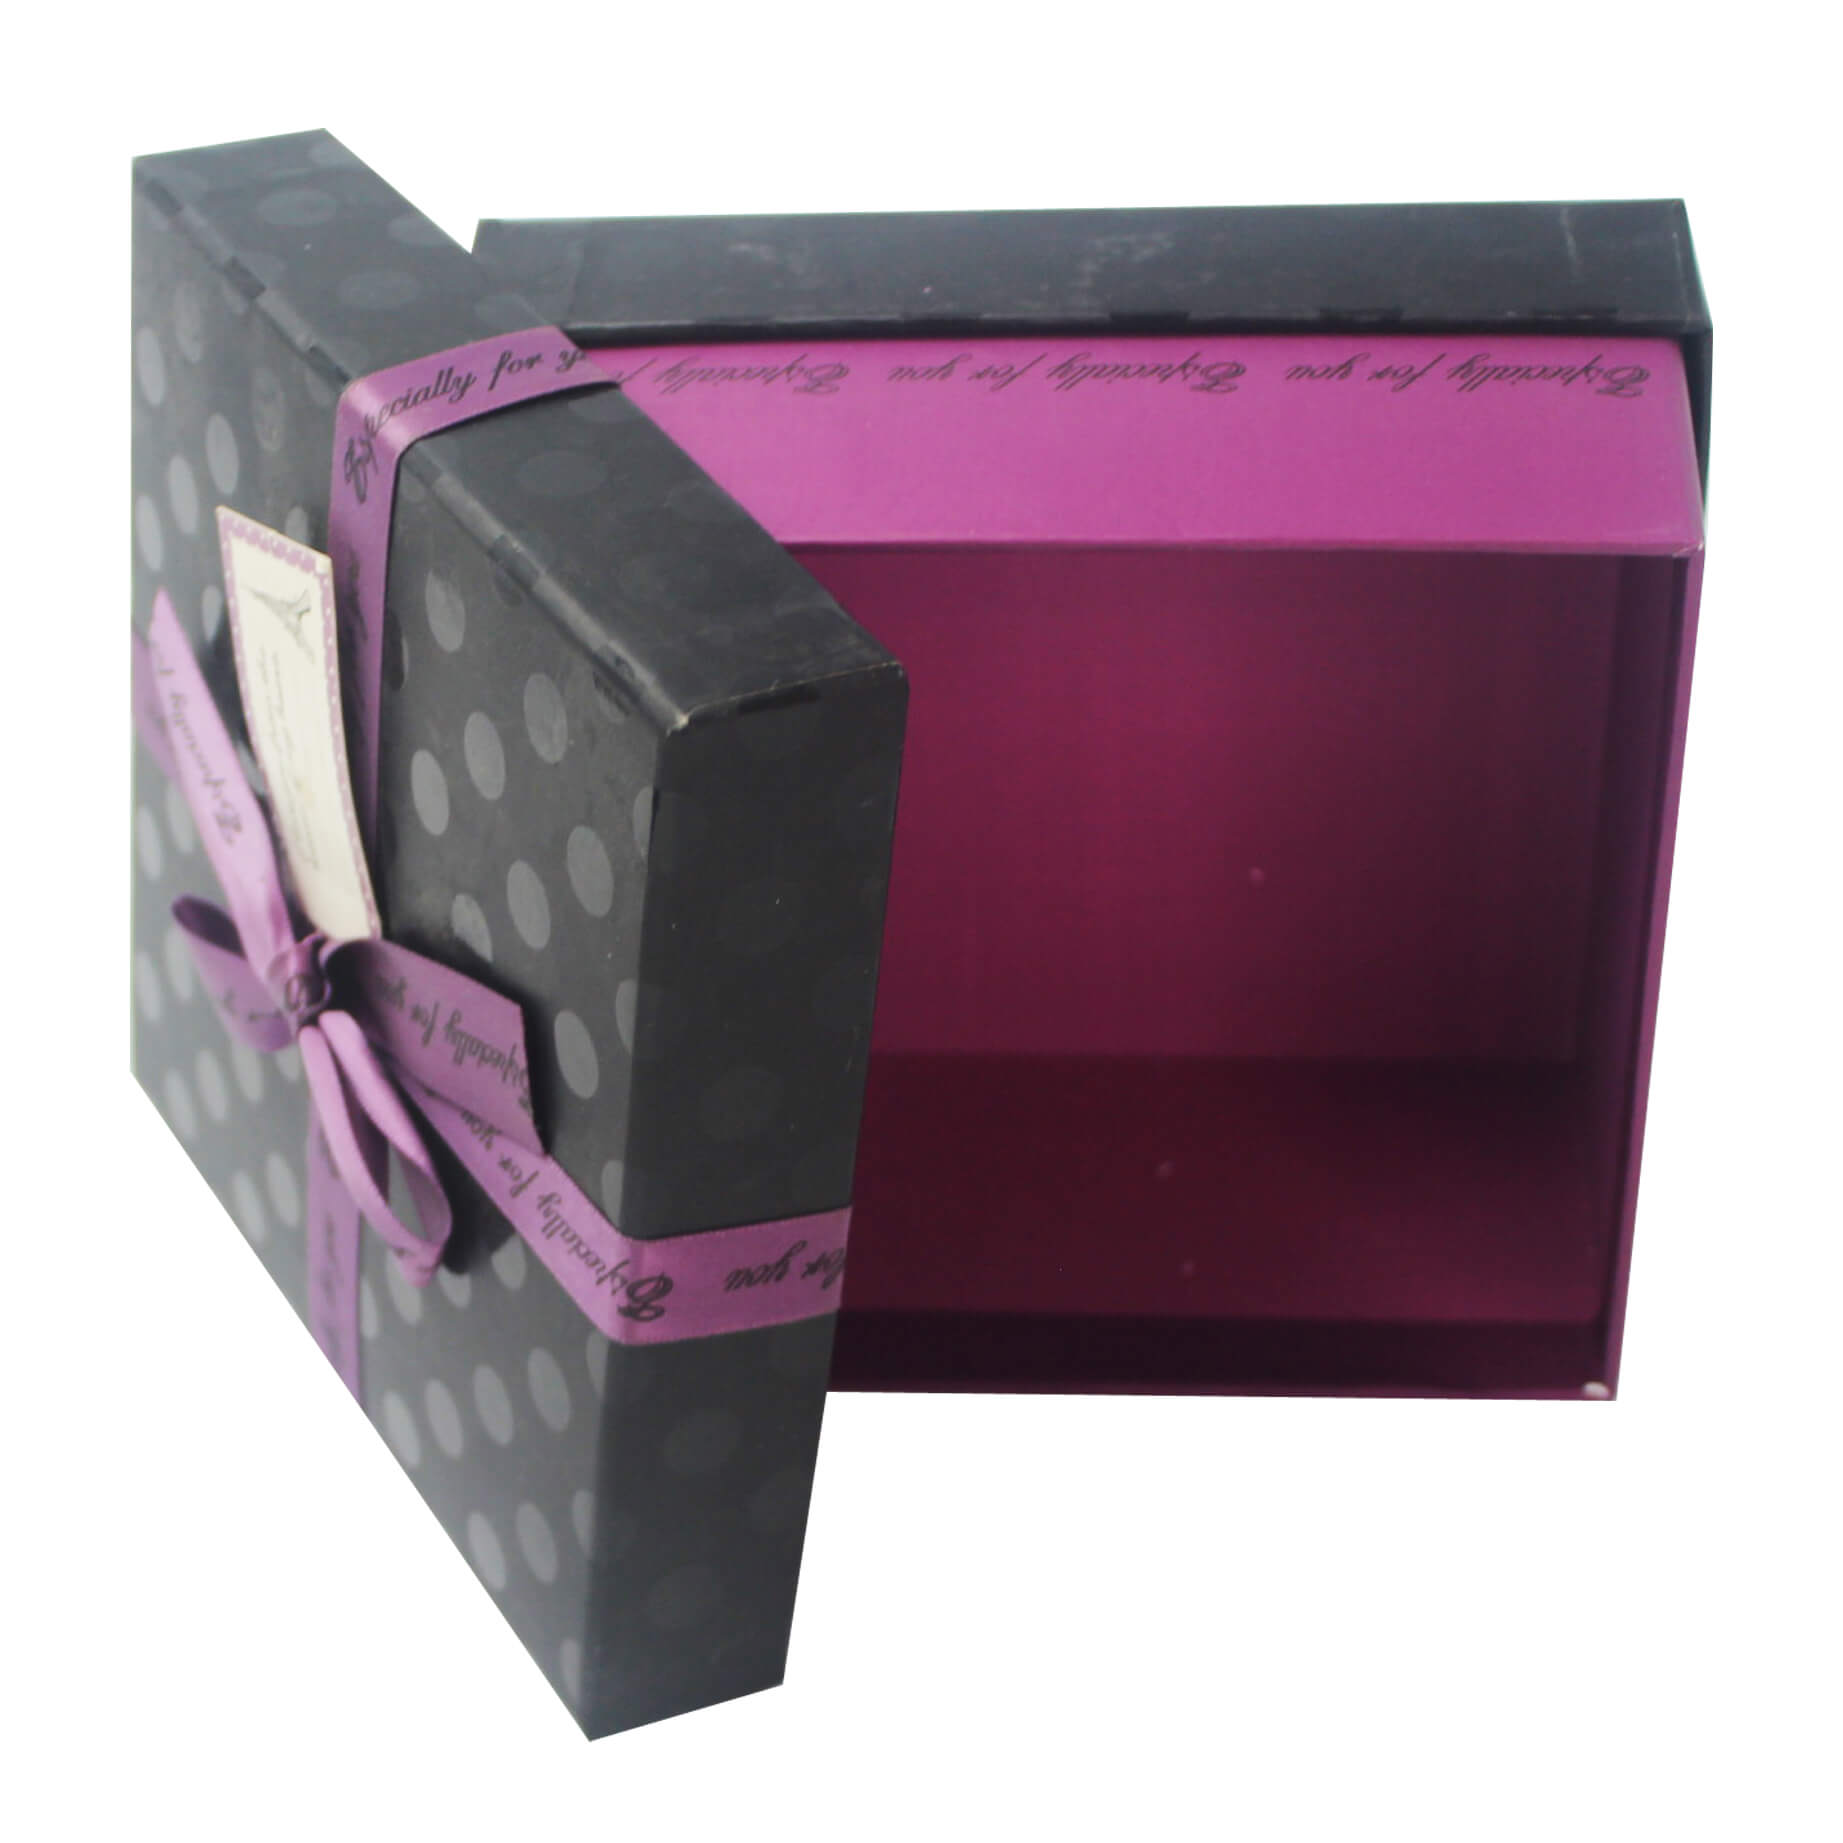 purple and black box